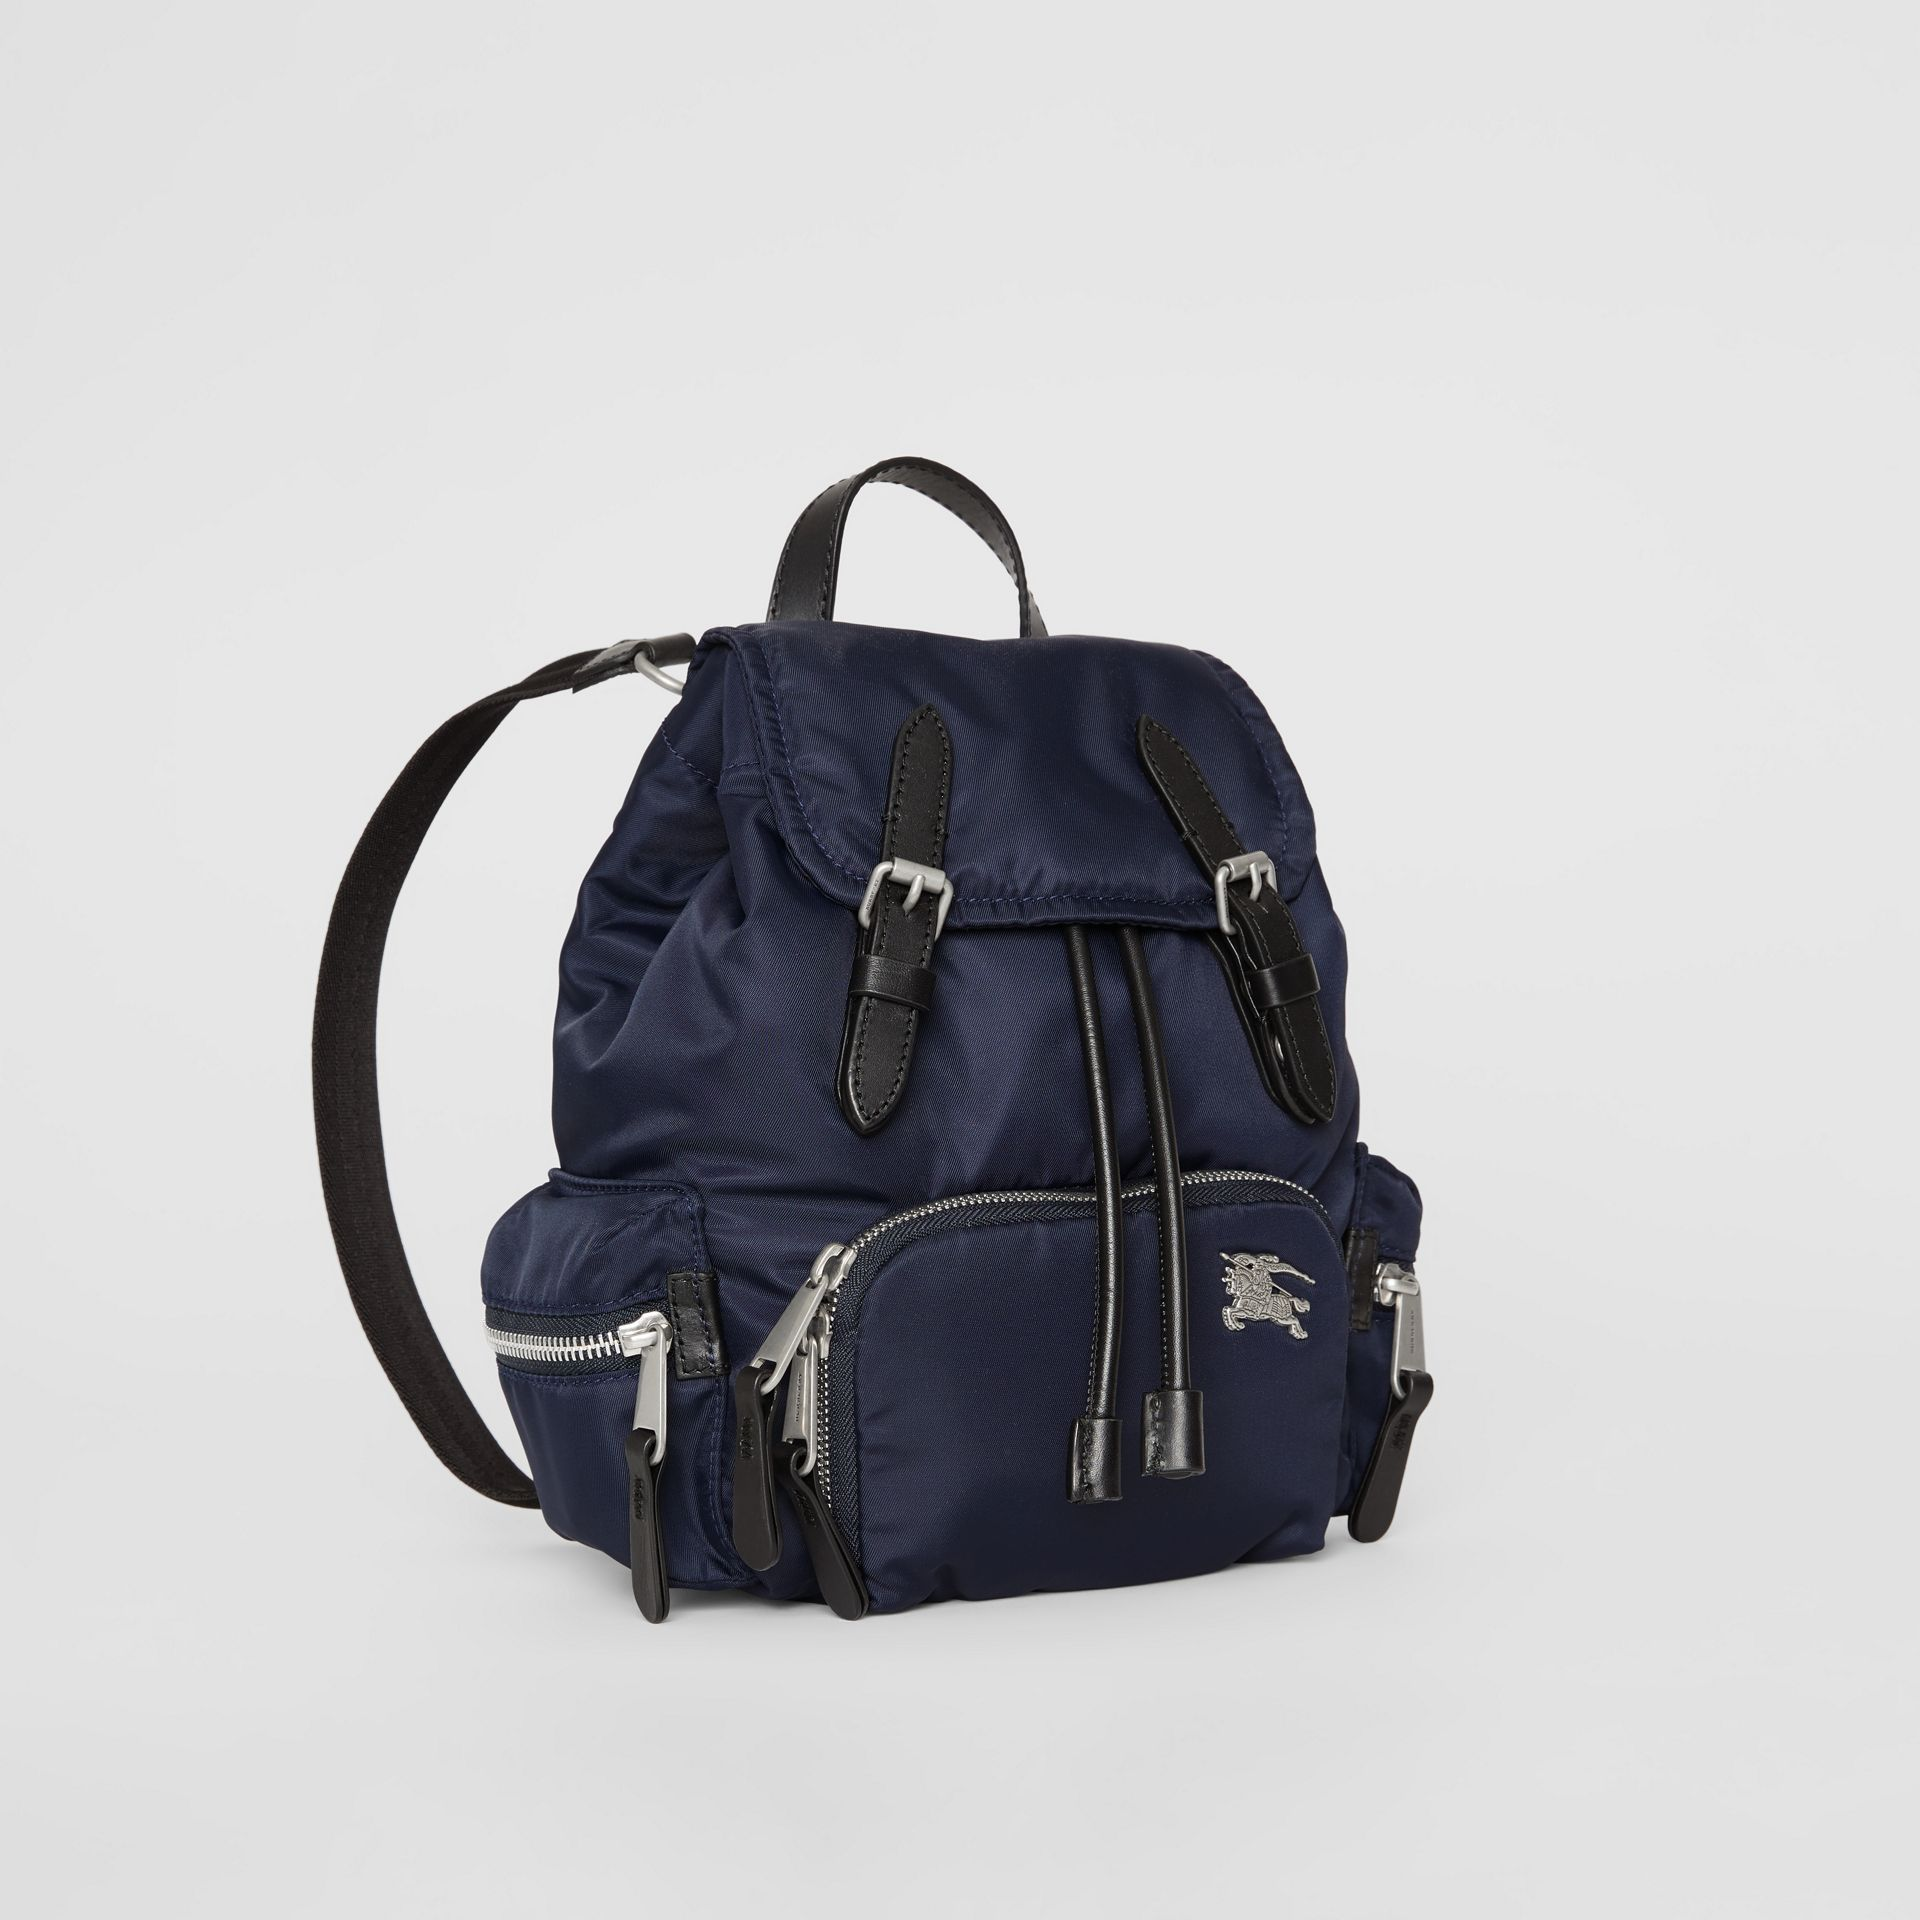 The Small Crossbody Rucksack in Puffer Nylon in Ink Blue - Women | Burberry Canada - gallery image 7